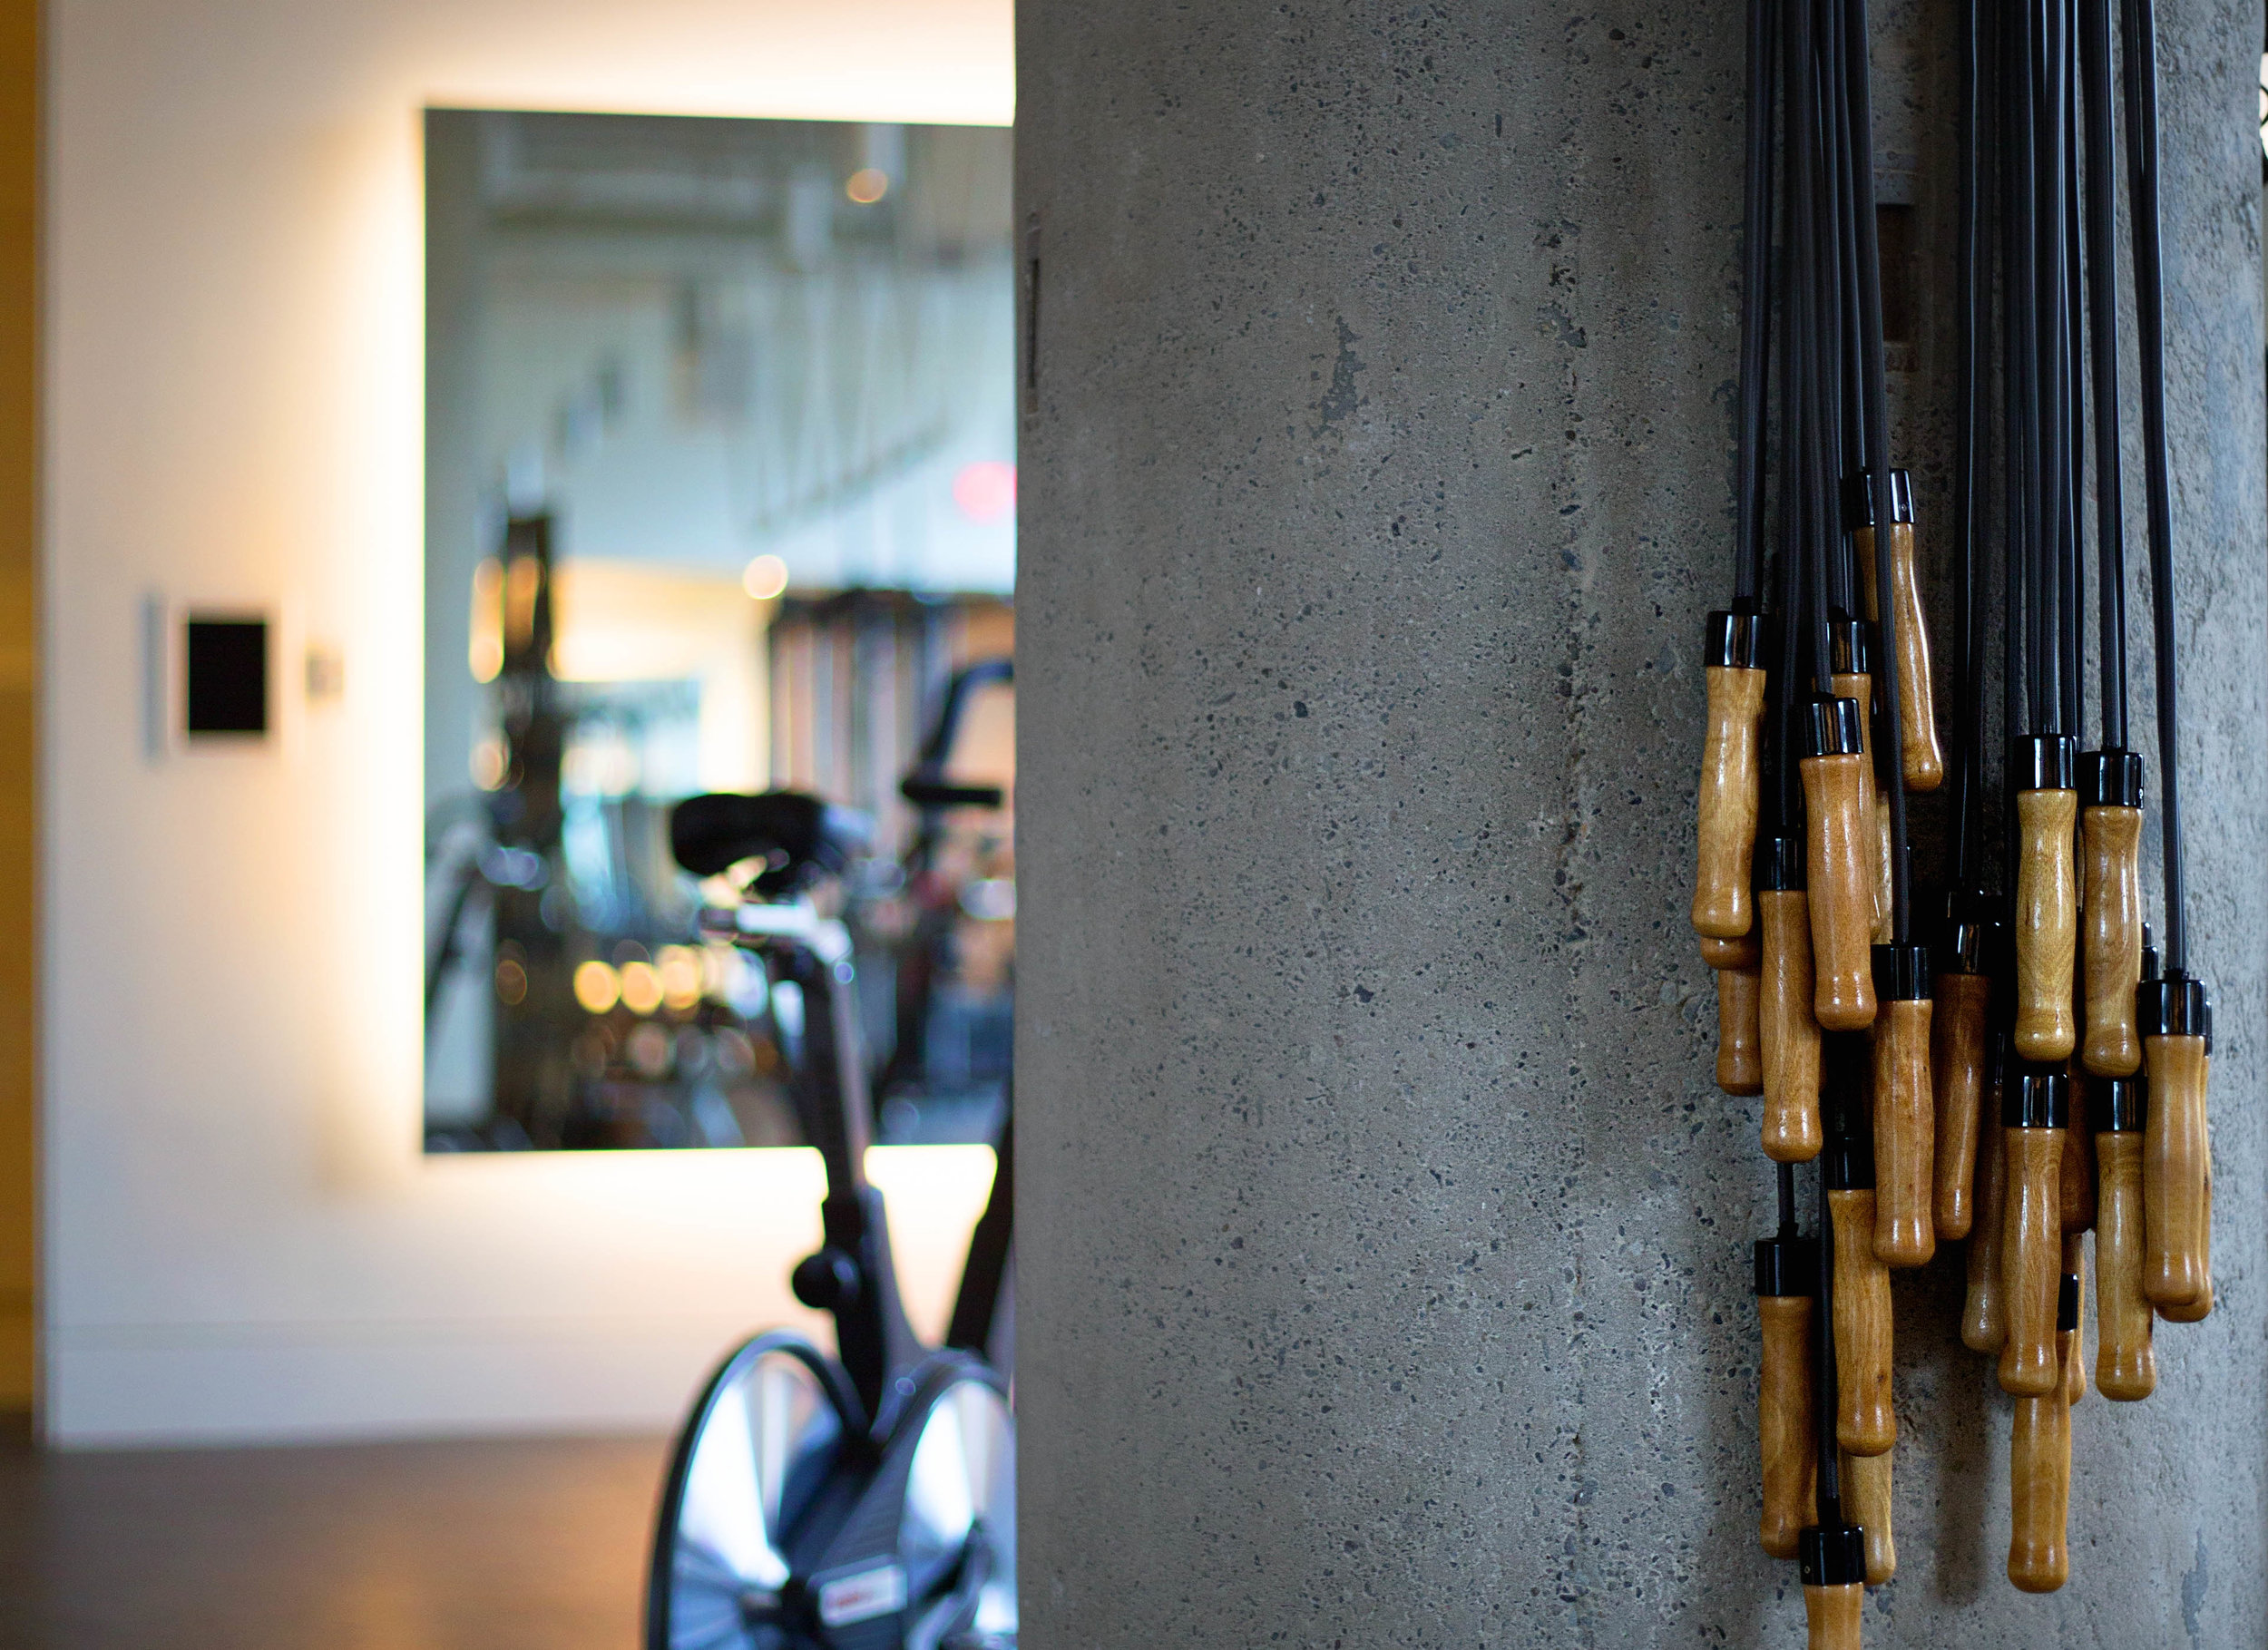 Jump ropes adorn one of the concrete columns within the studio, as natural light sifts across its surface.